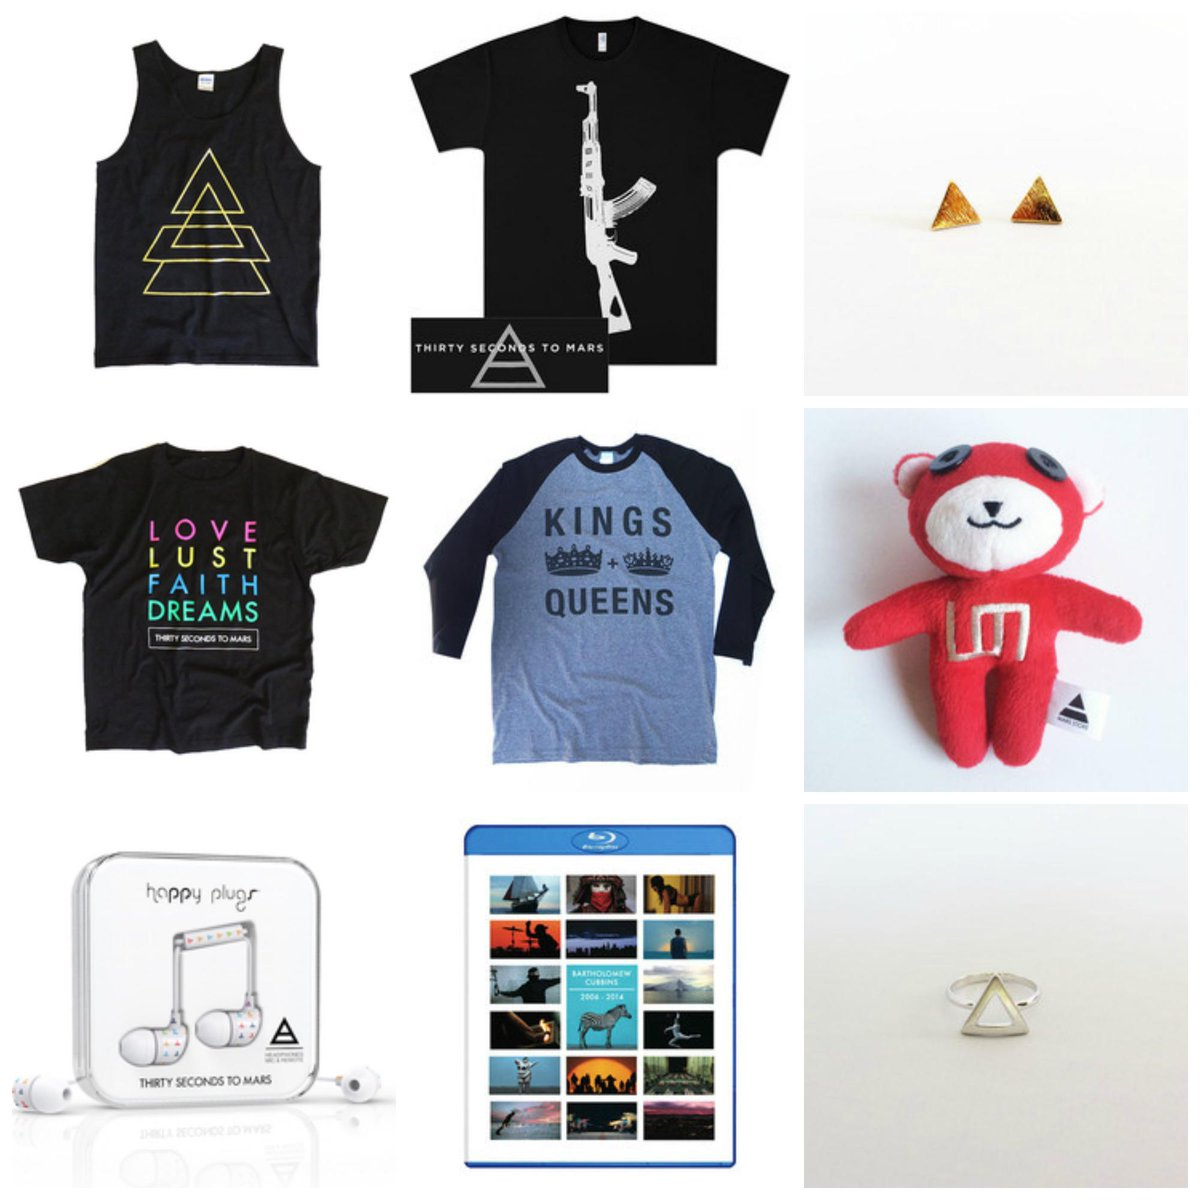 RT @MARSStore: Have you checked out our new merch? Head to our store + treat yourself to our #MARS goodies! http://t.co/3hjXvaESP9 http://t…